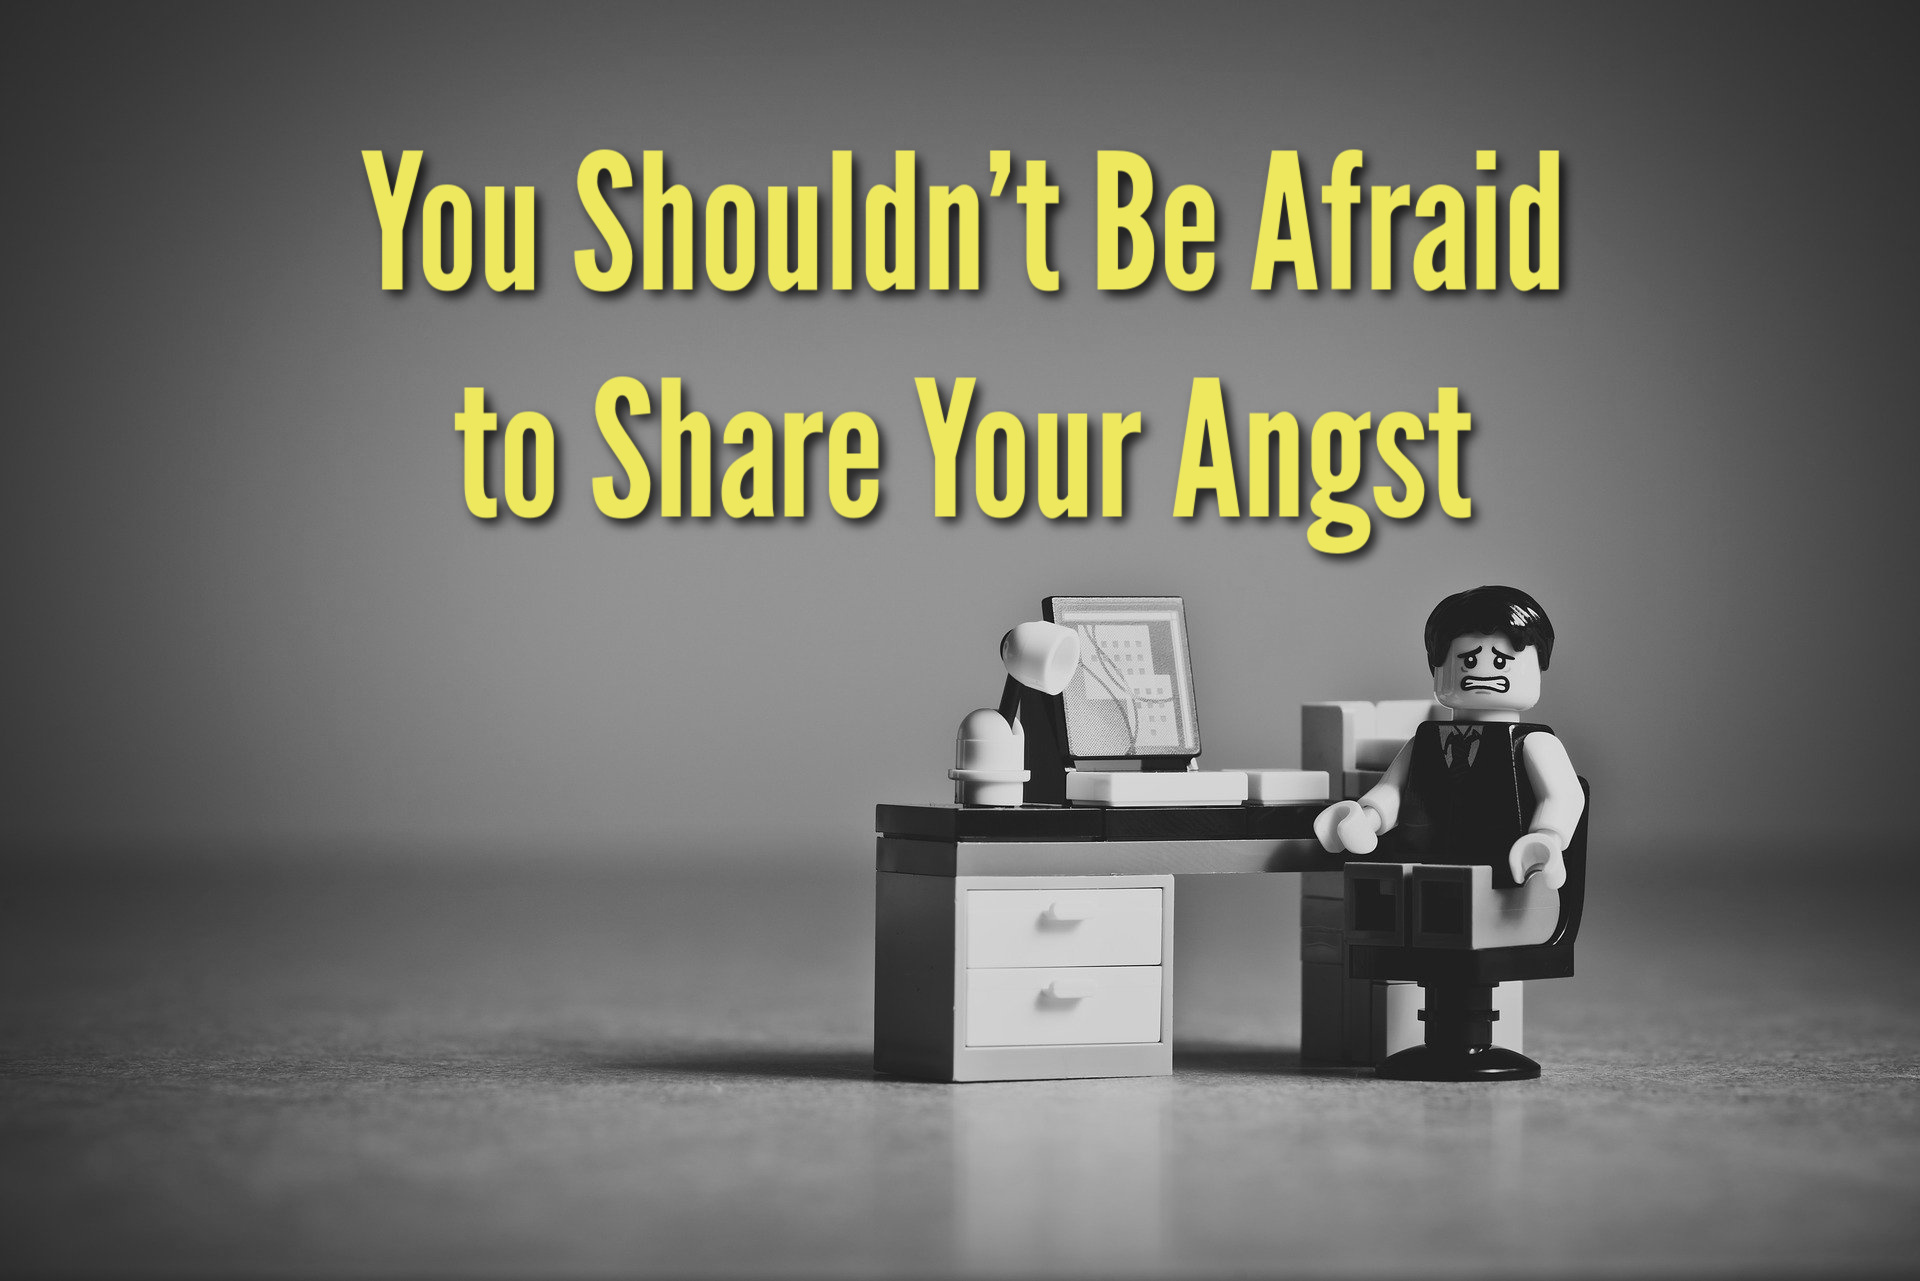 You Shouldn't Be Afraid to Share Your Angst